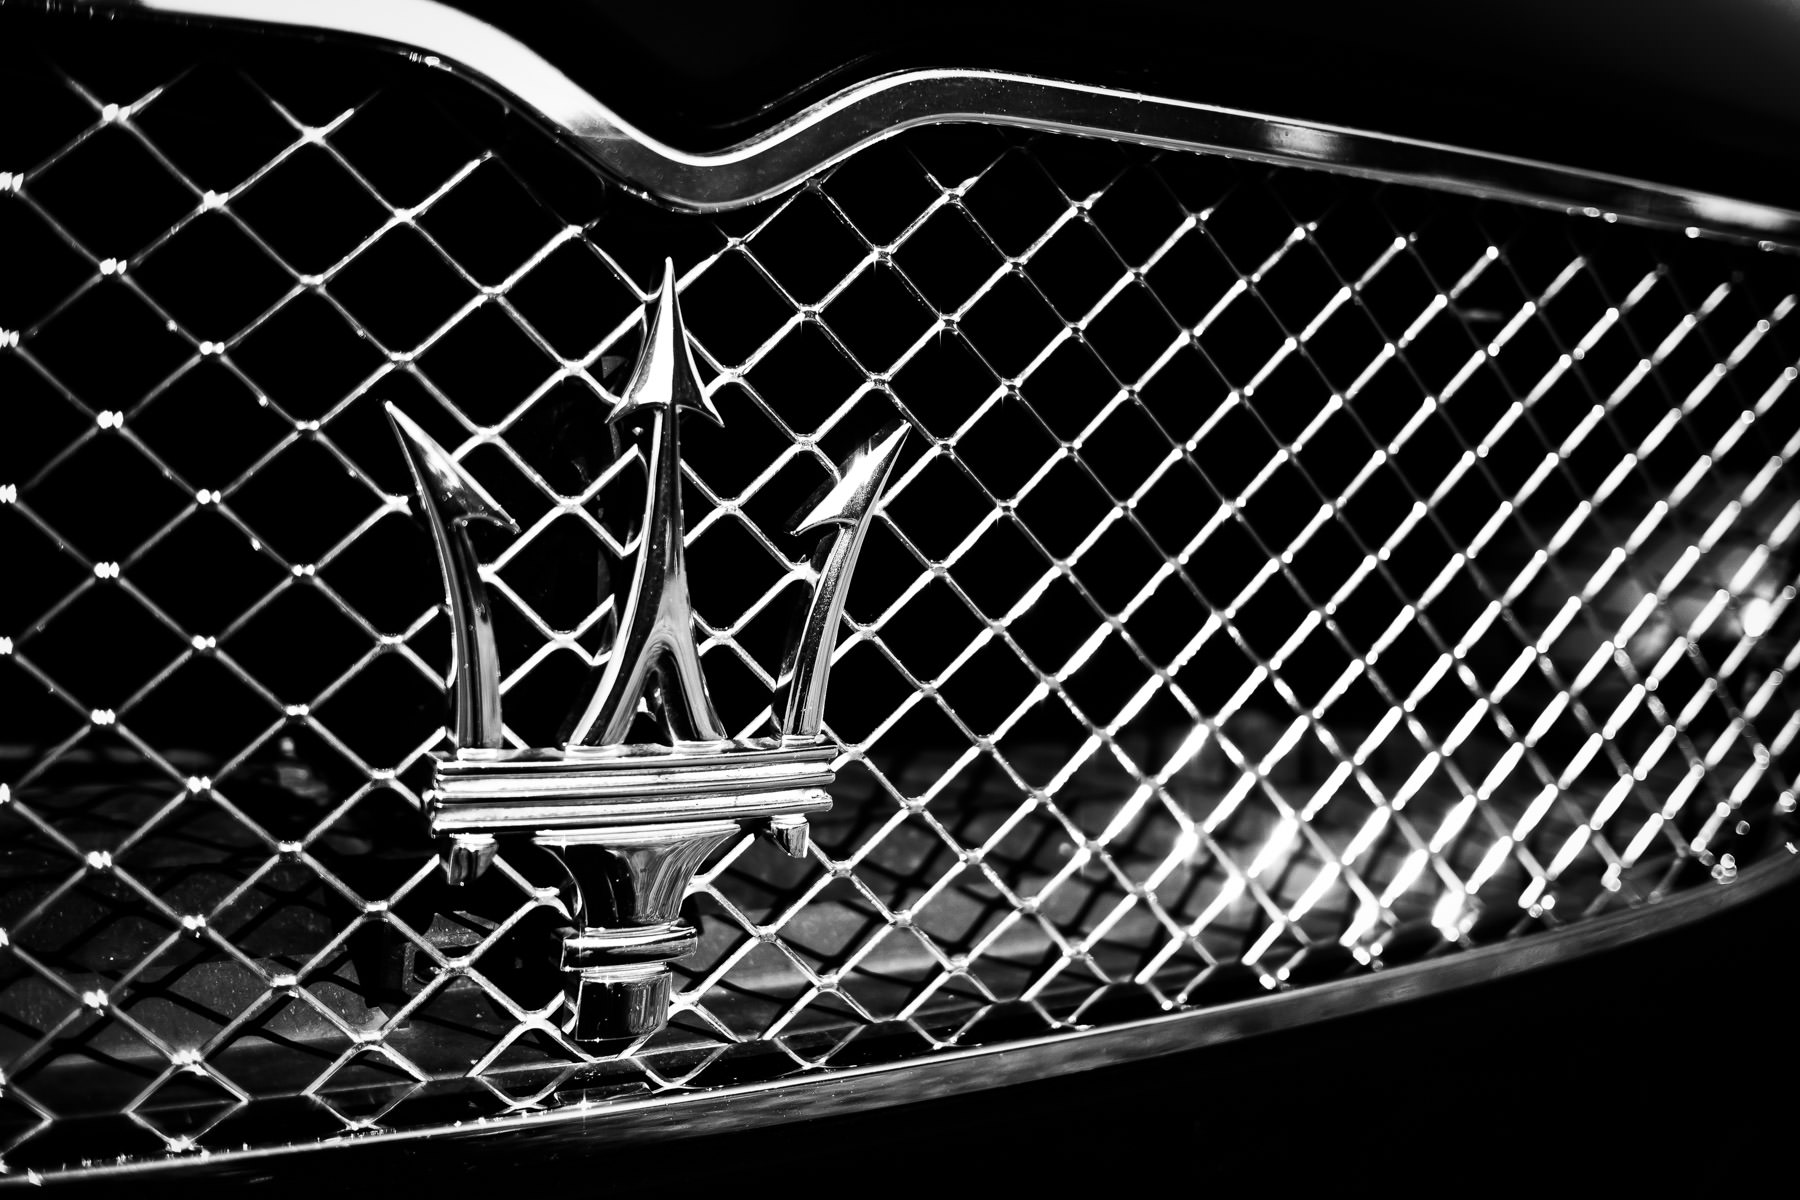 Detail of a Maserati's grille-mounted trident emblem at ItalianCarFest in Grapevine, Texas.